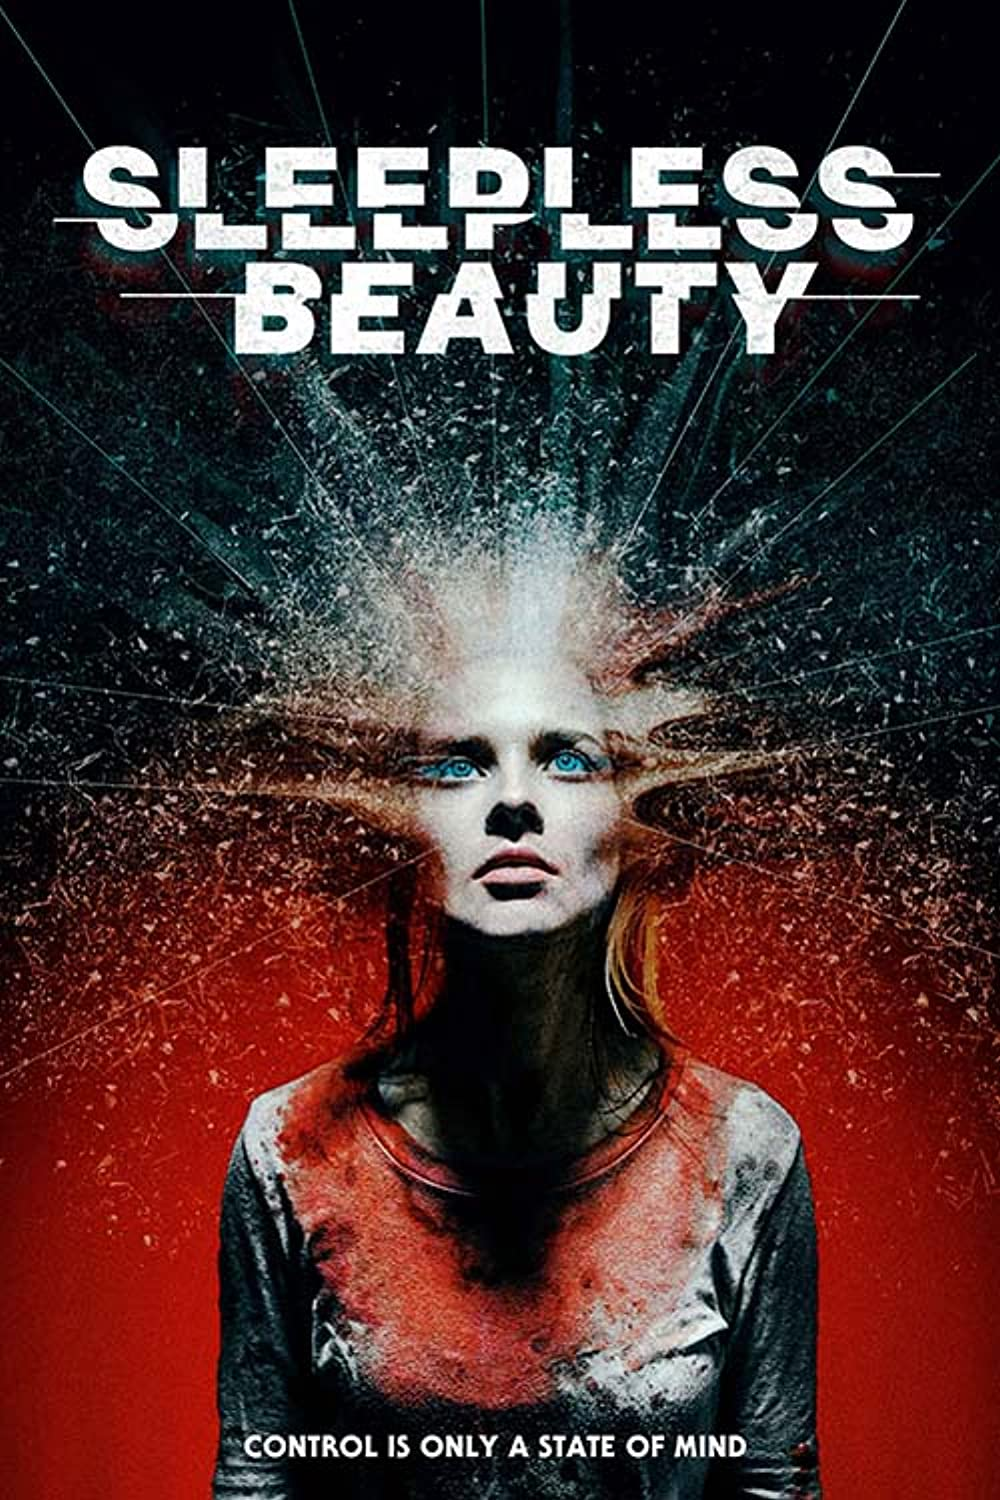 Download Sleepless Beauty 2020 Hindi Dual Audio 480p UNRATED HDRip ESubs 300MB